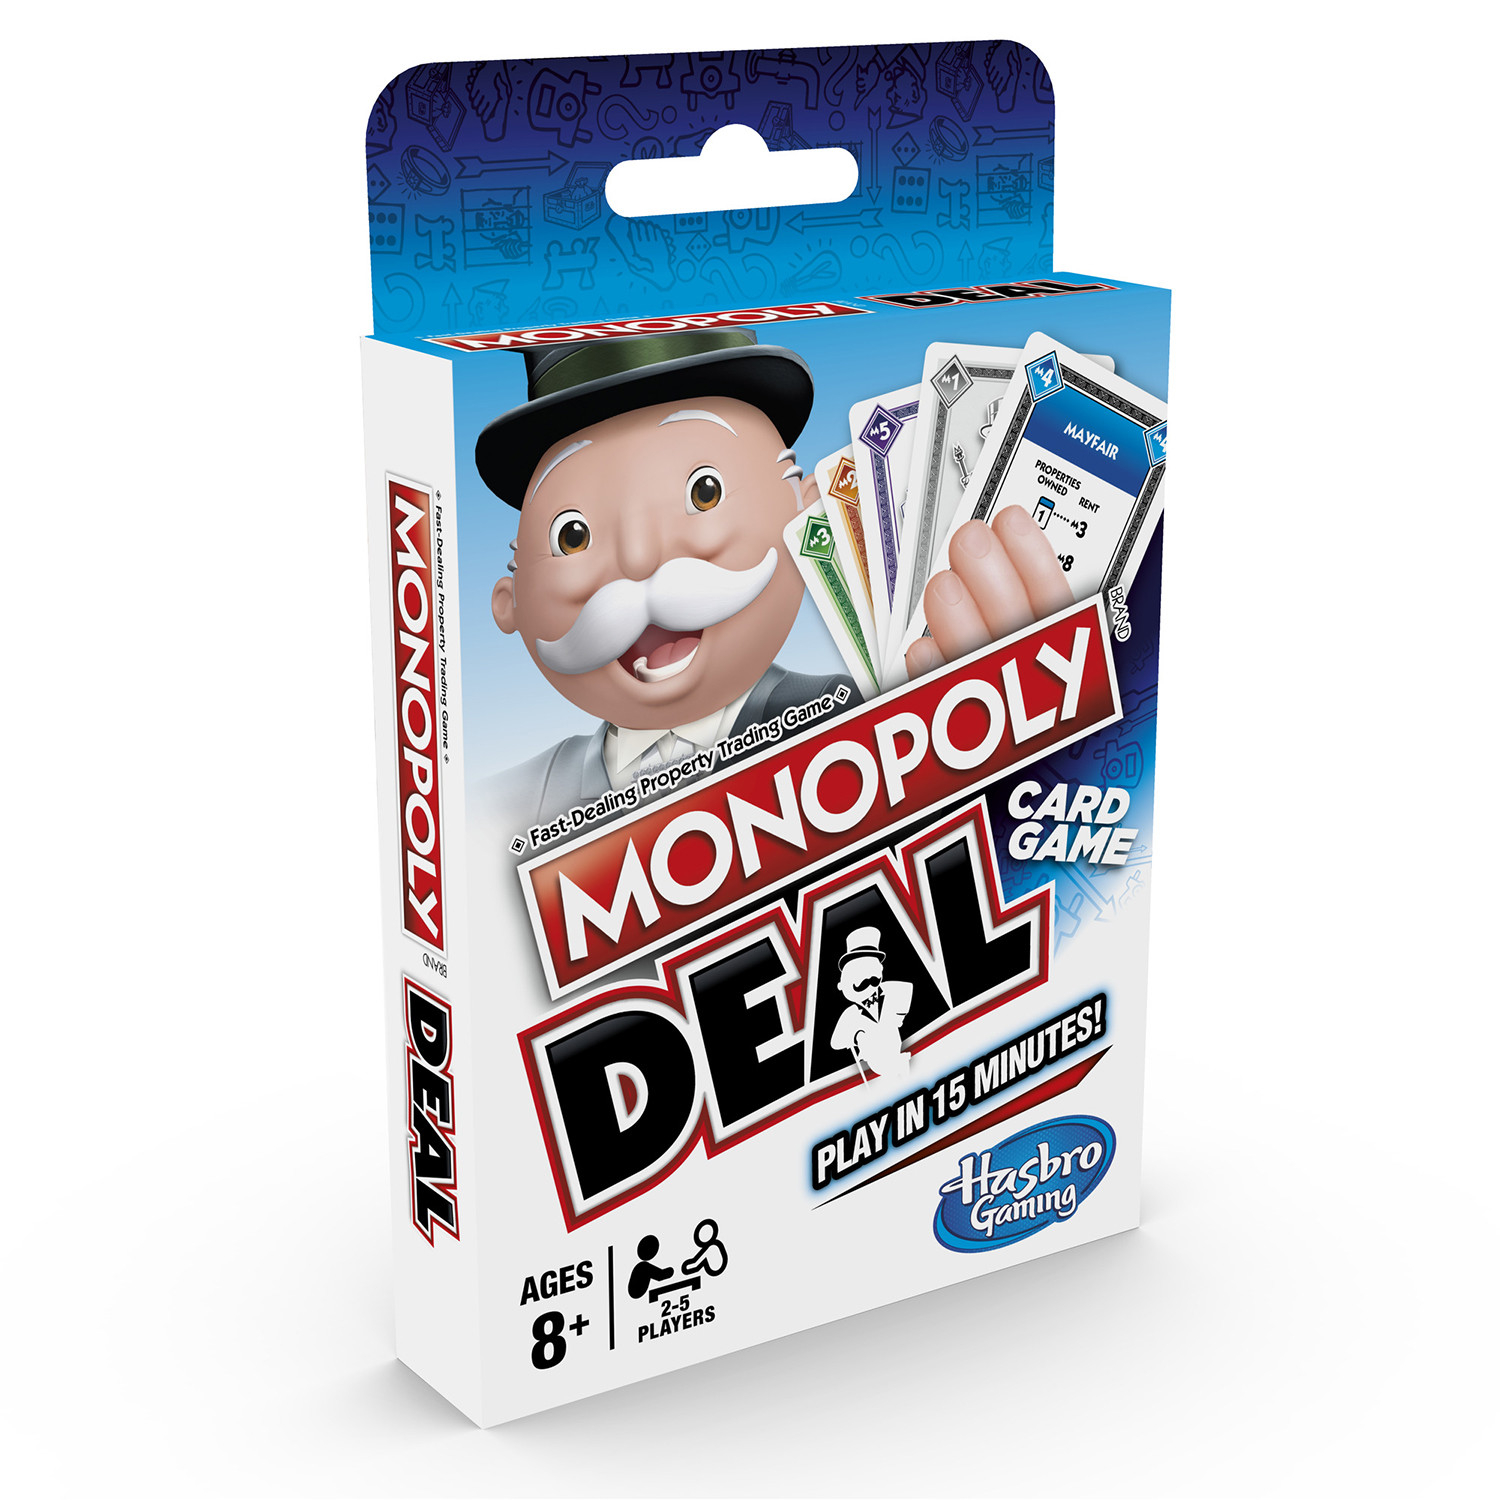 Monopoly Deal Card Game - EN